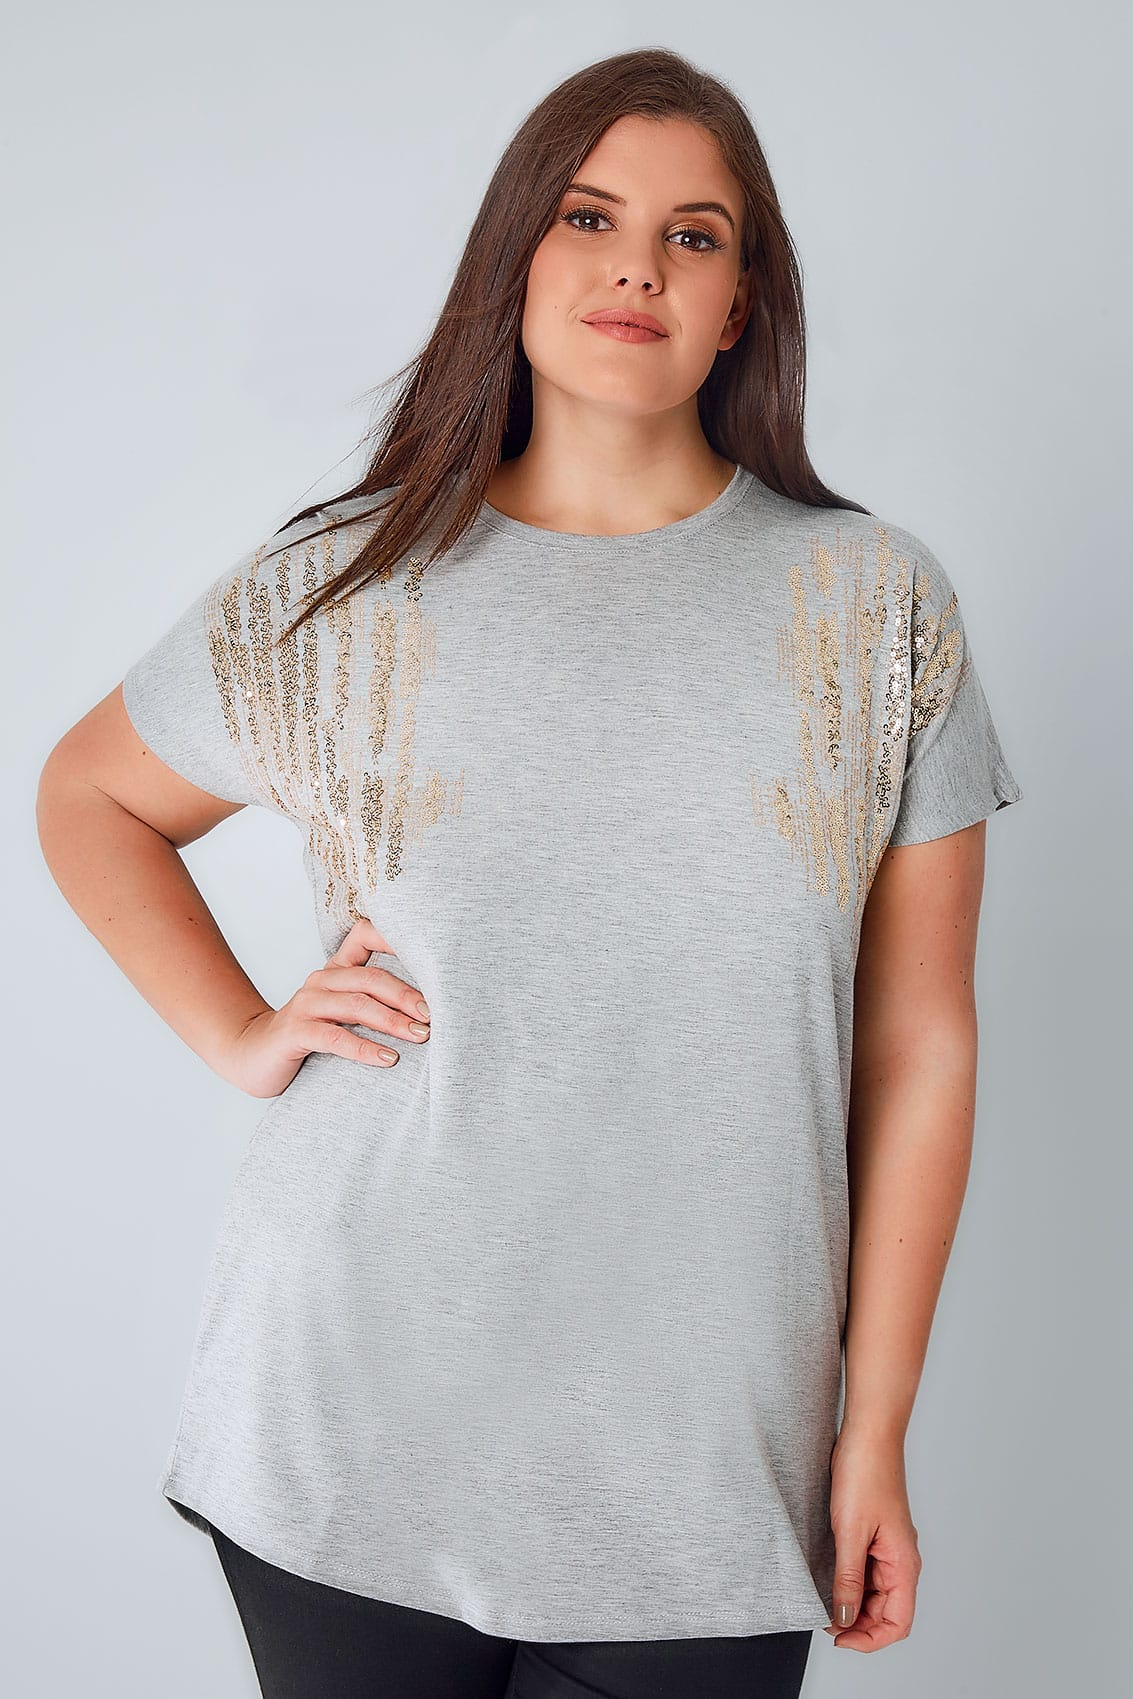 haircut prices graues t shirt mit gold pailletten detail in gro 223 en 4863